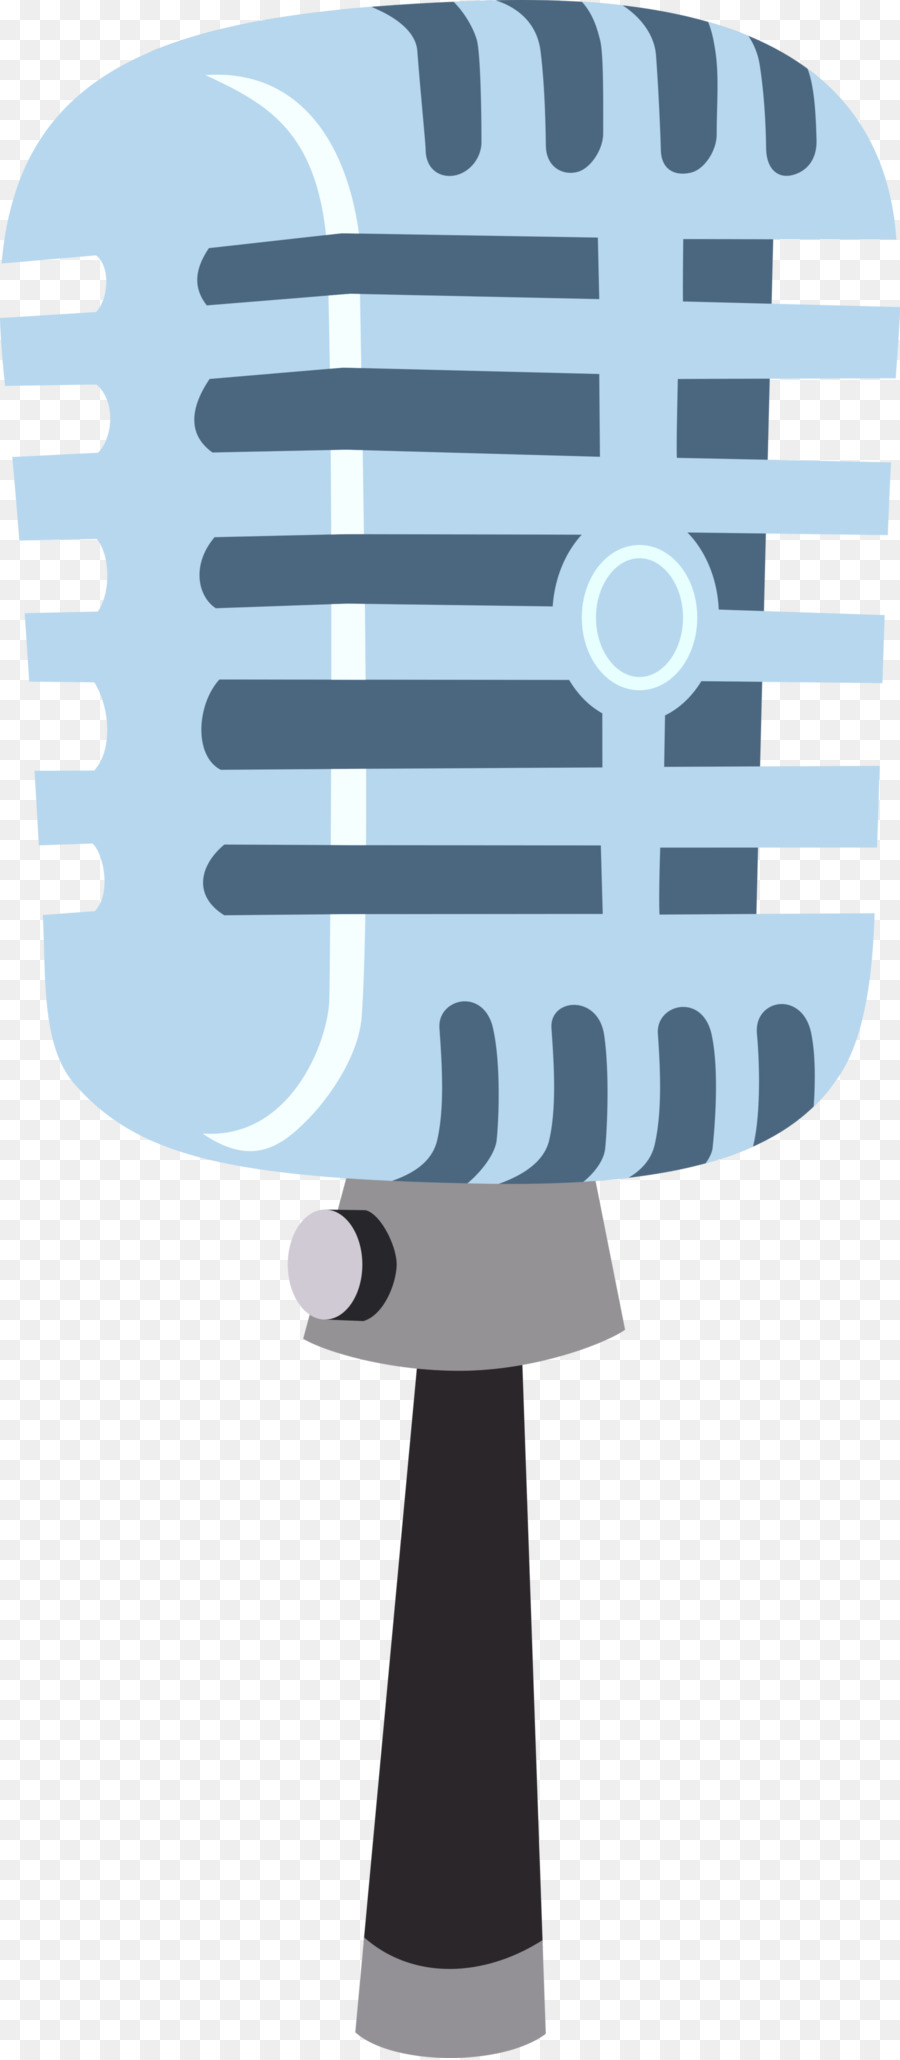 900x2060 Microphone Audio Drawing